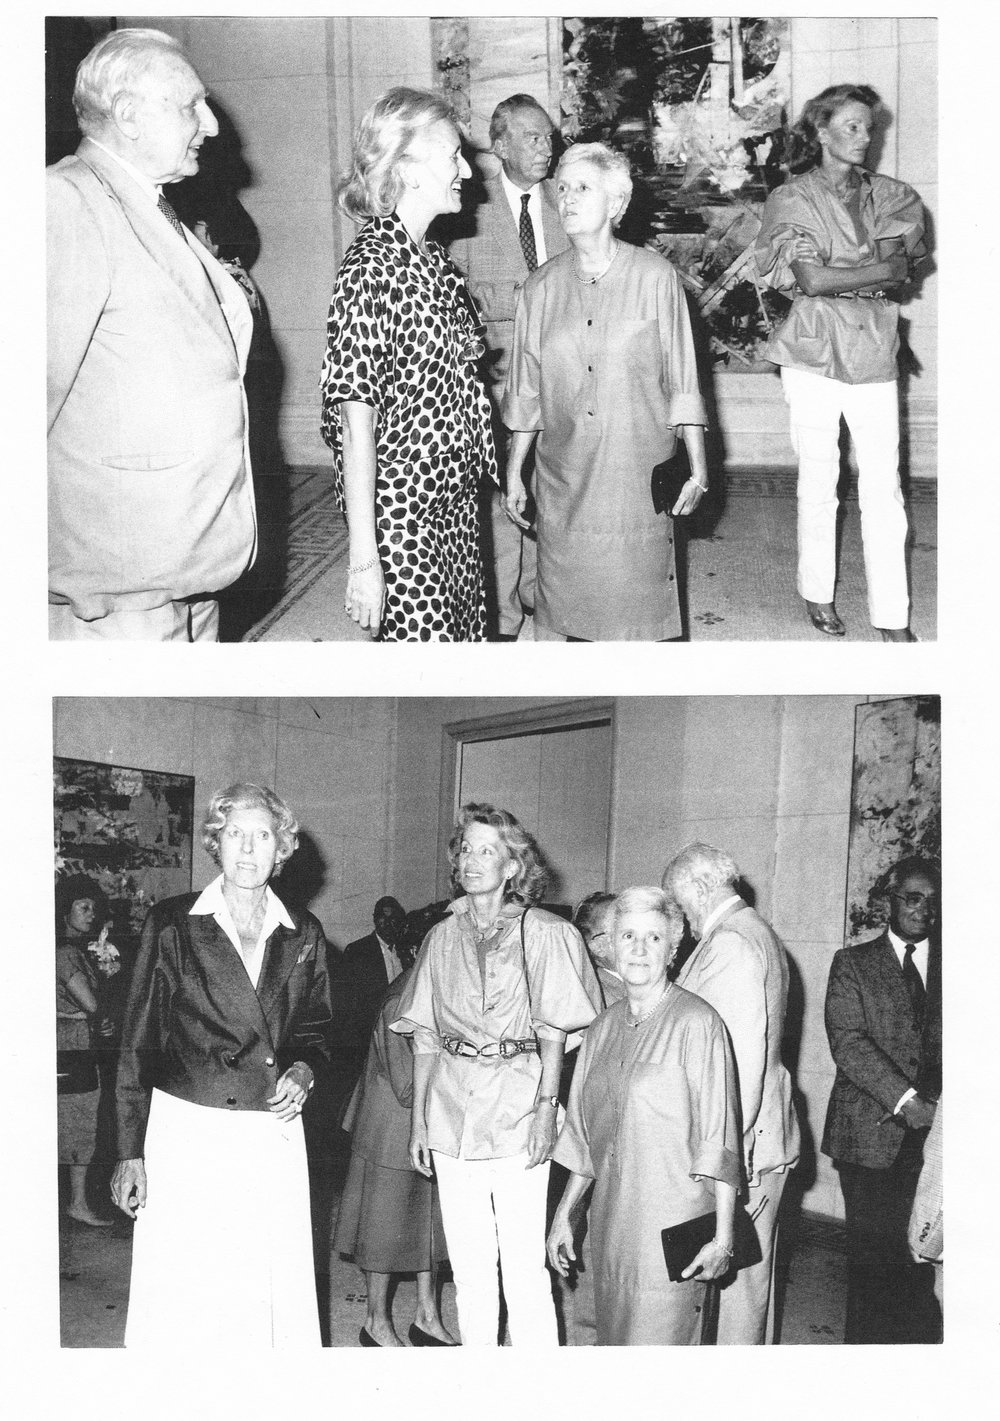 FIAC opening at Grand Palais, Paris, before 1990 One of the 18 occasions where M. F. Toninelli Art Moderne participated.